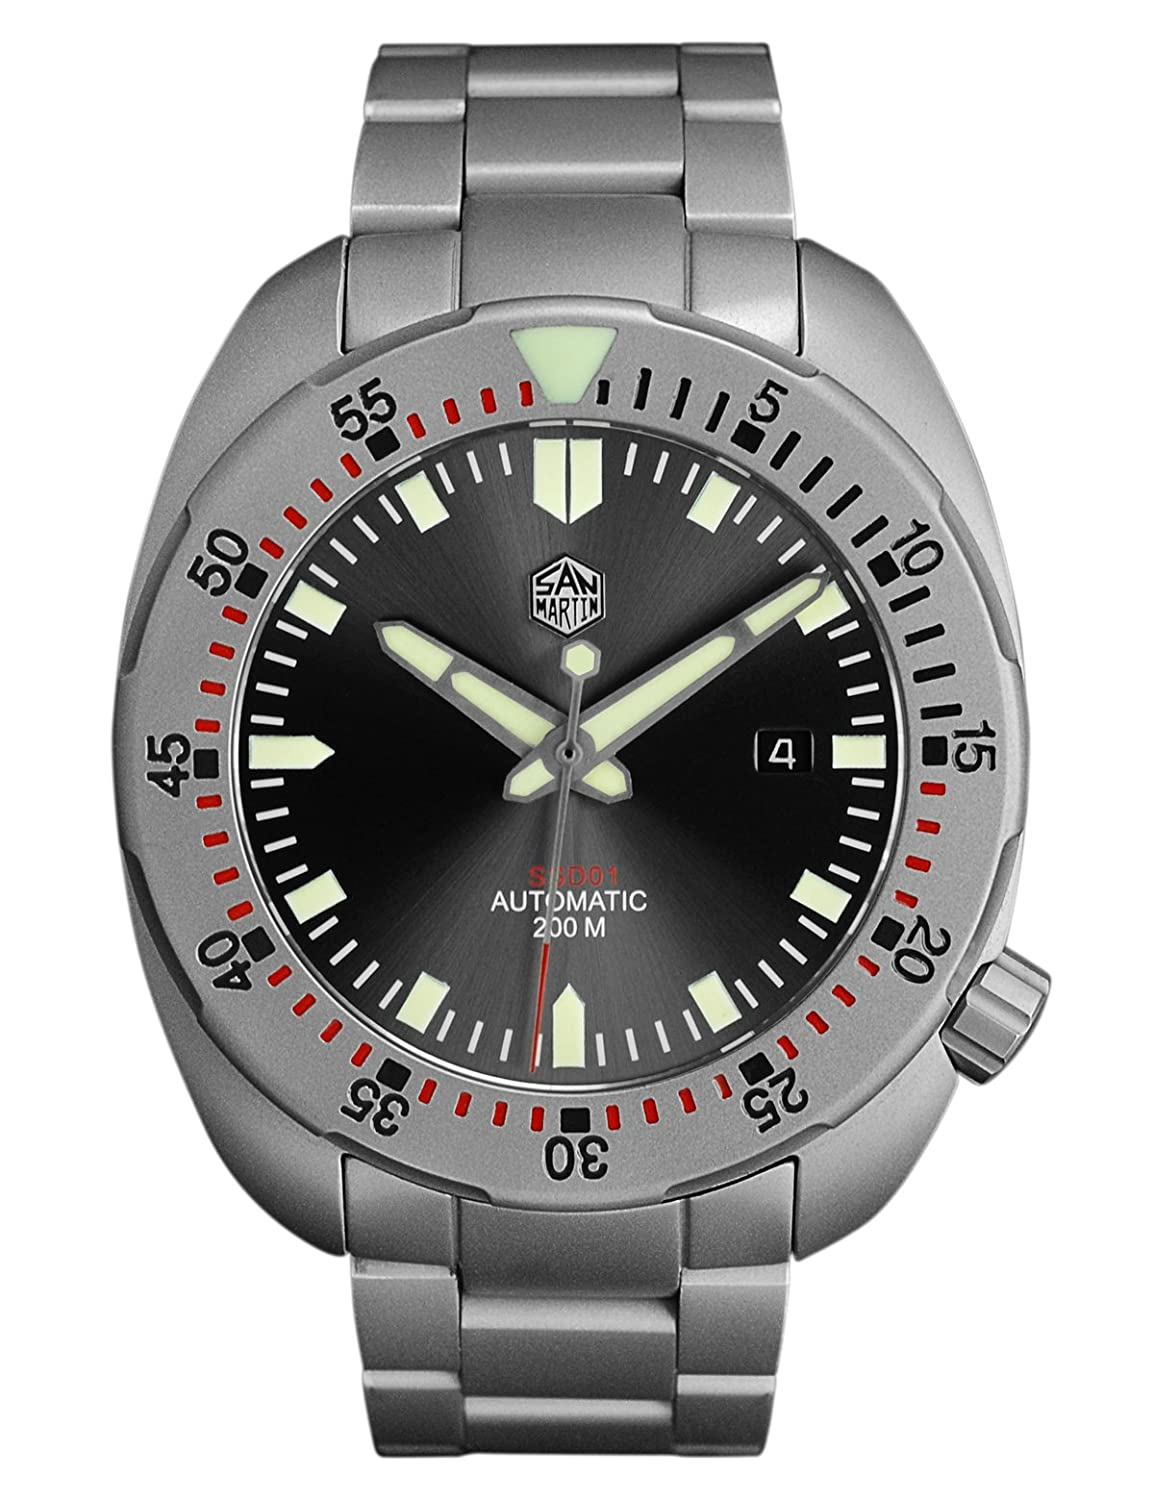 Amazon.com: San Martin Mens Stainless Steel Automatic Dive Watch 200 Meter Water Resistance Sapphire Glass 44MM: Watches